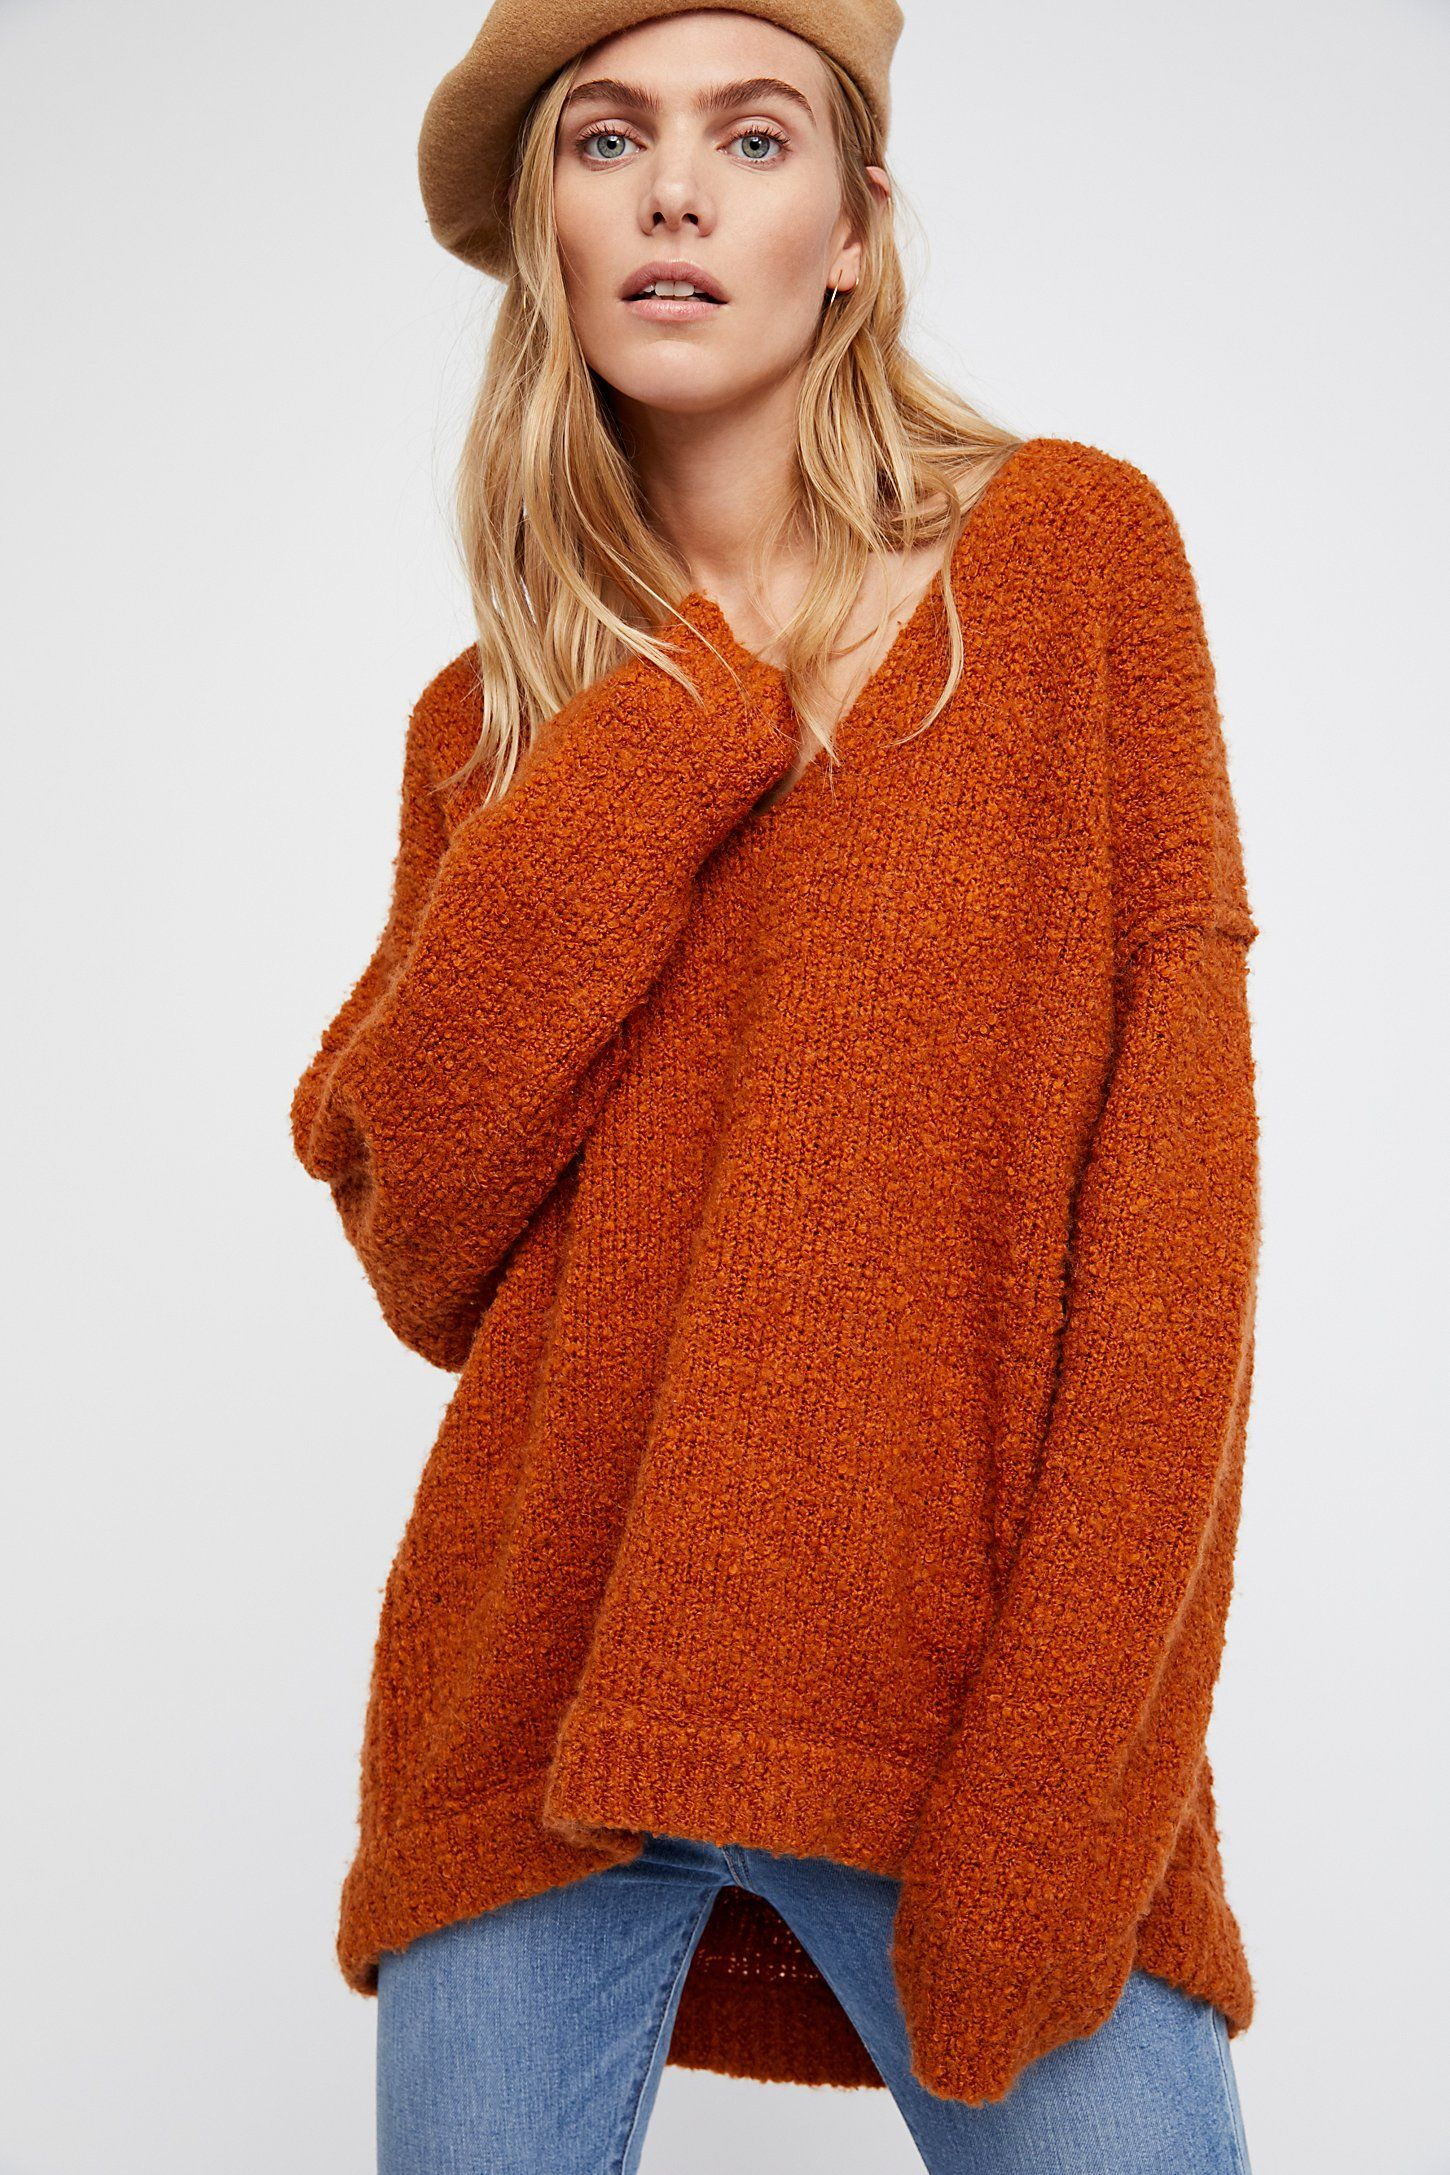 Lofty V Neck Sweater Hat Love Ropa Ropa De Invierno Invierno